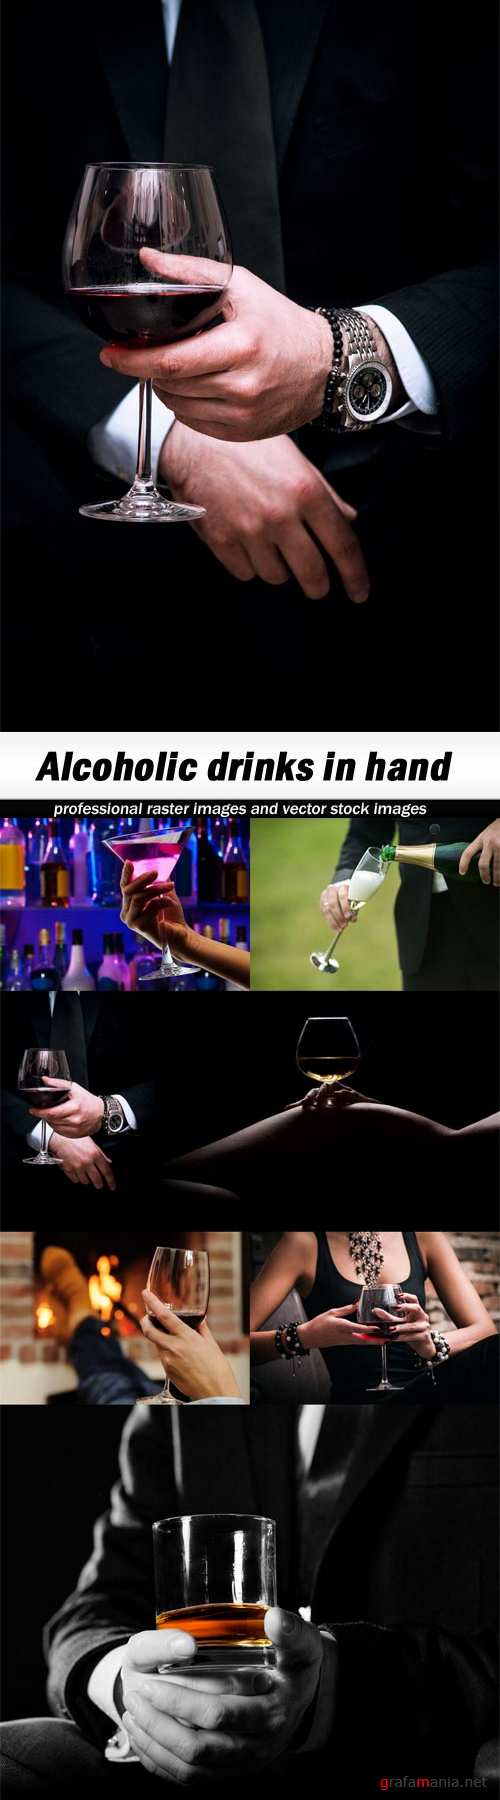 Alcoholic drinks in hand-7xUHQ JPEG